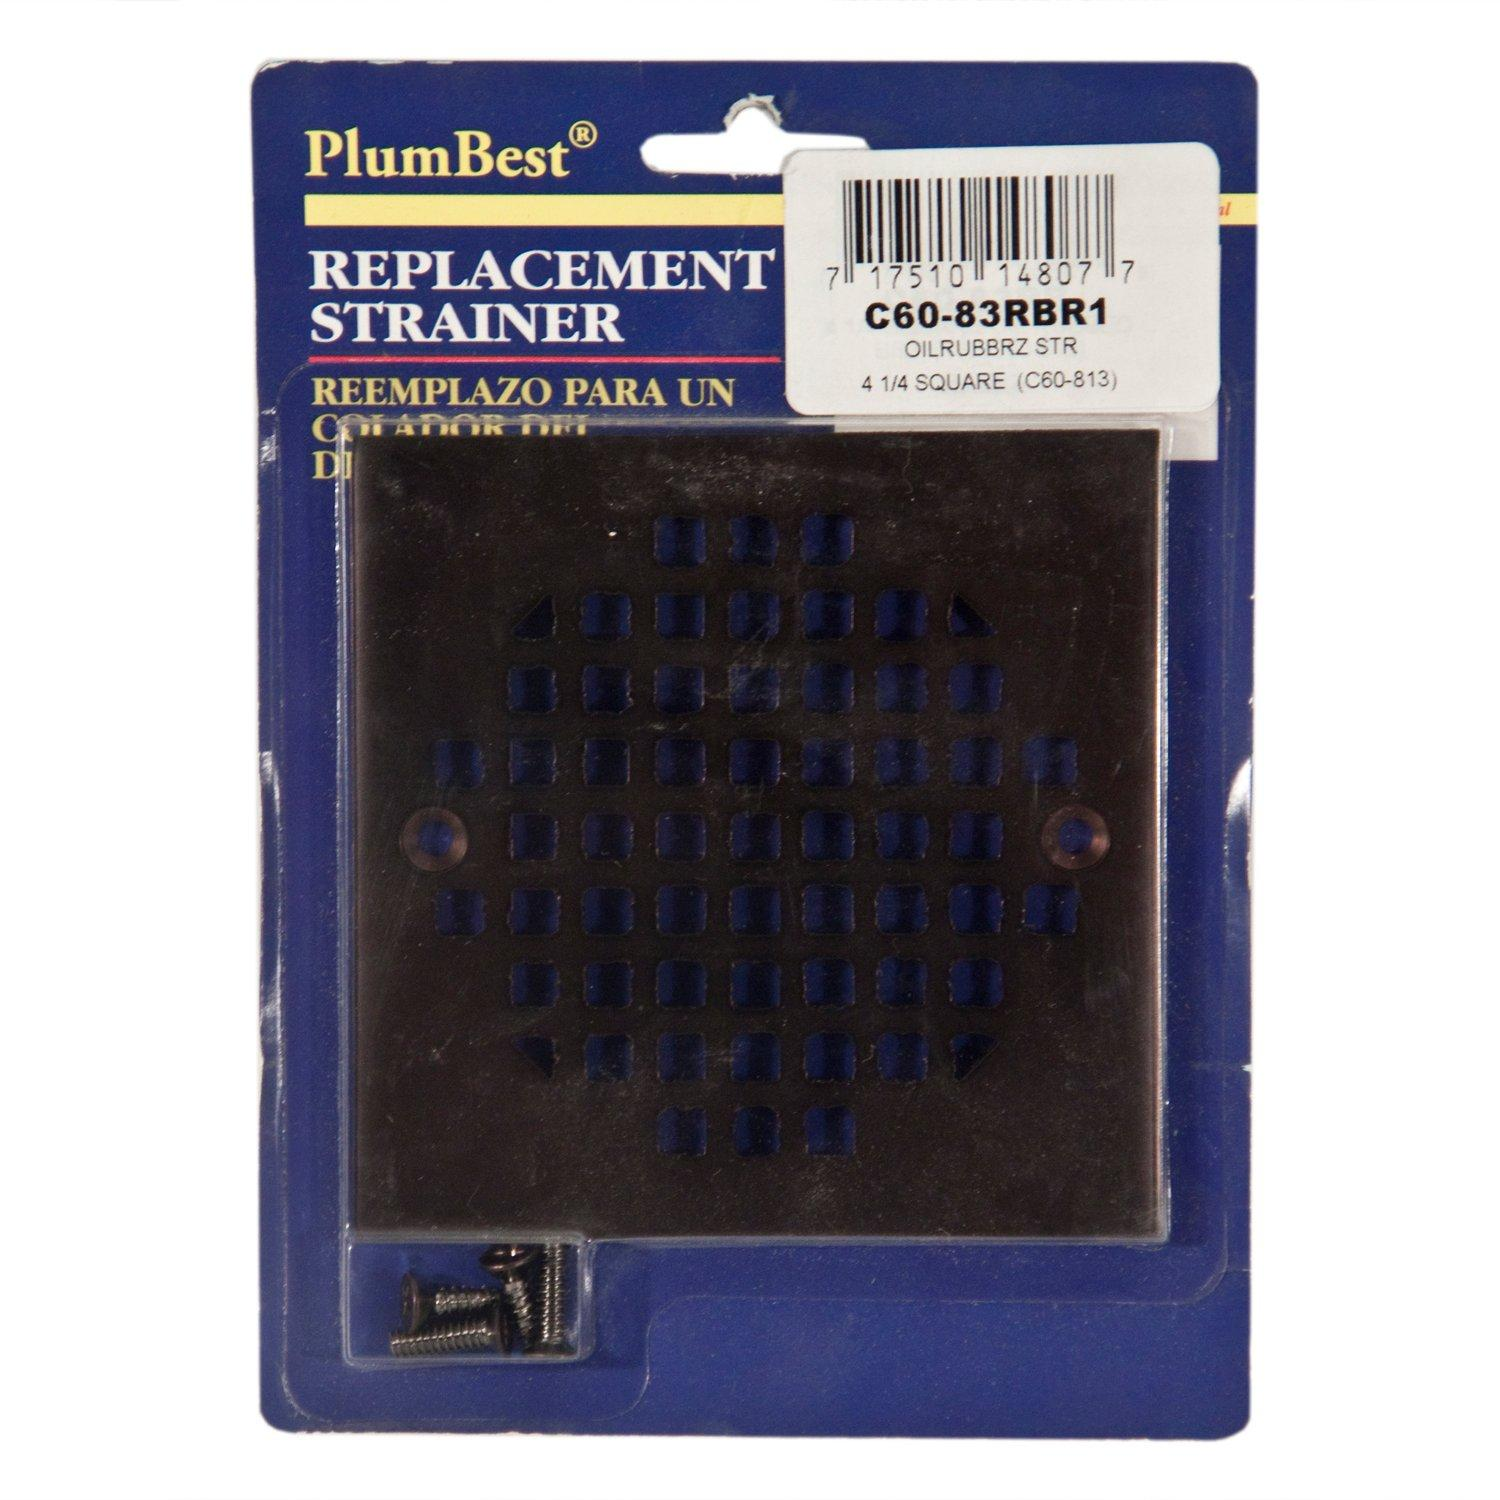 plumbest oil rubbed square bronze shower drain cover 4 14in floor and decor